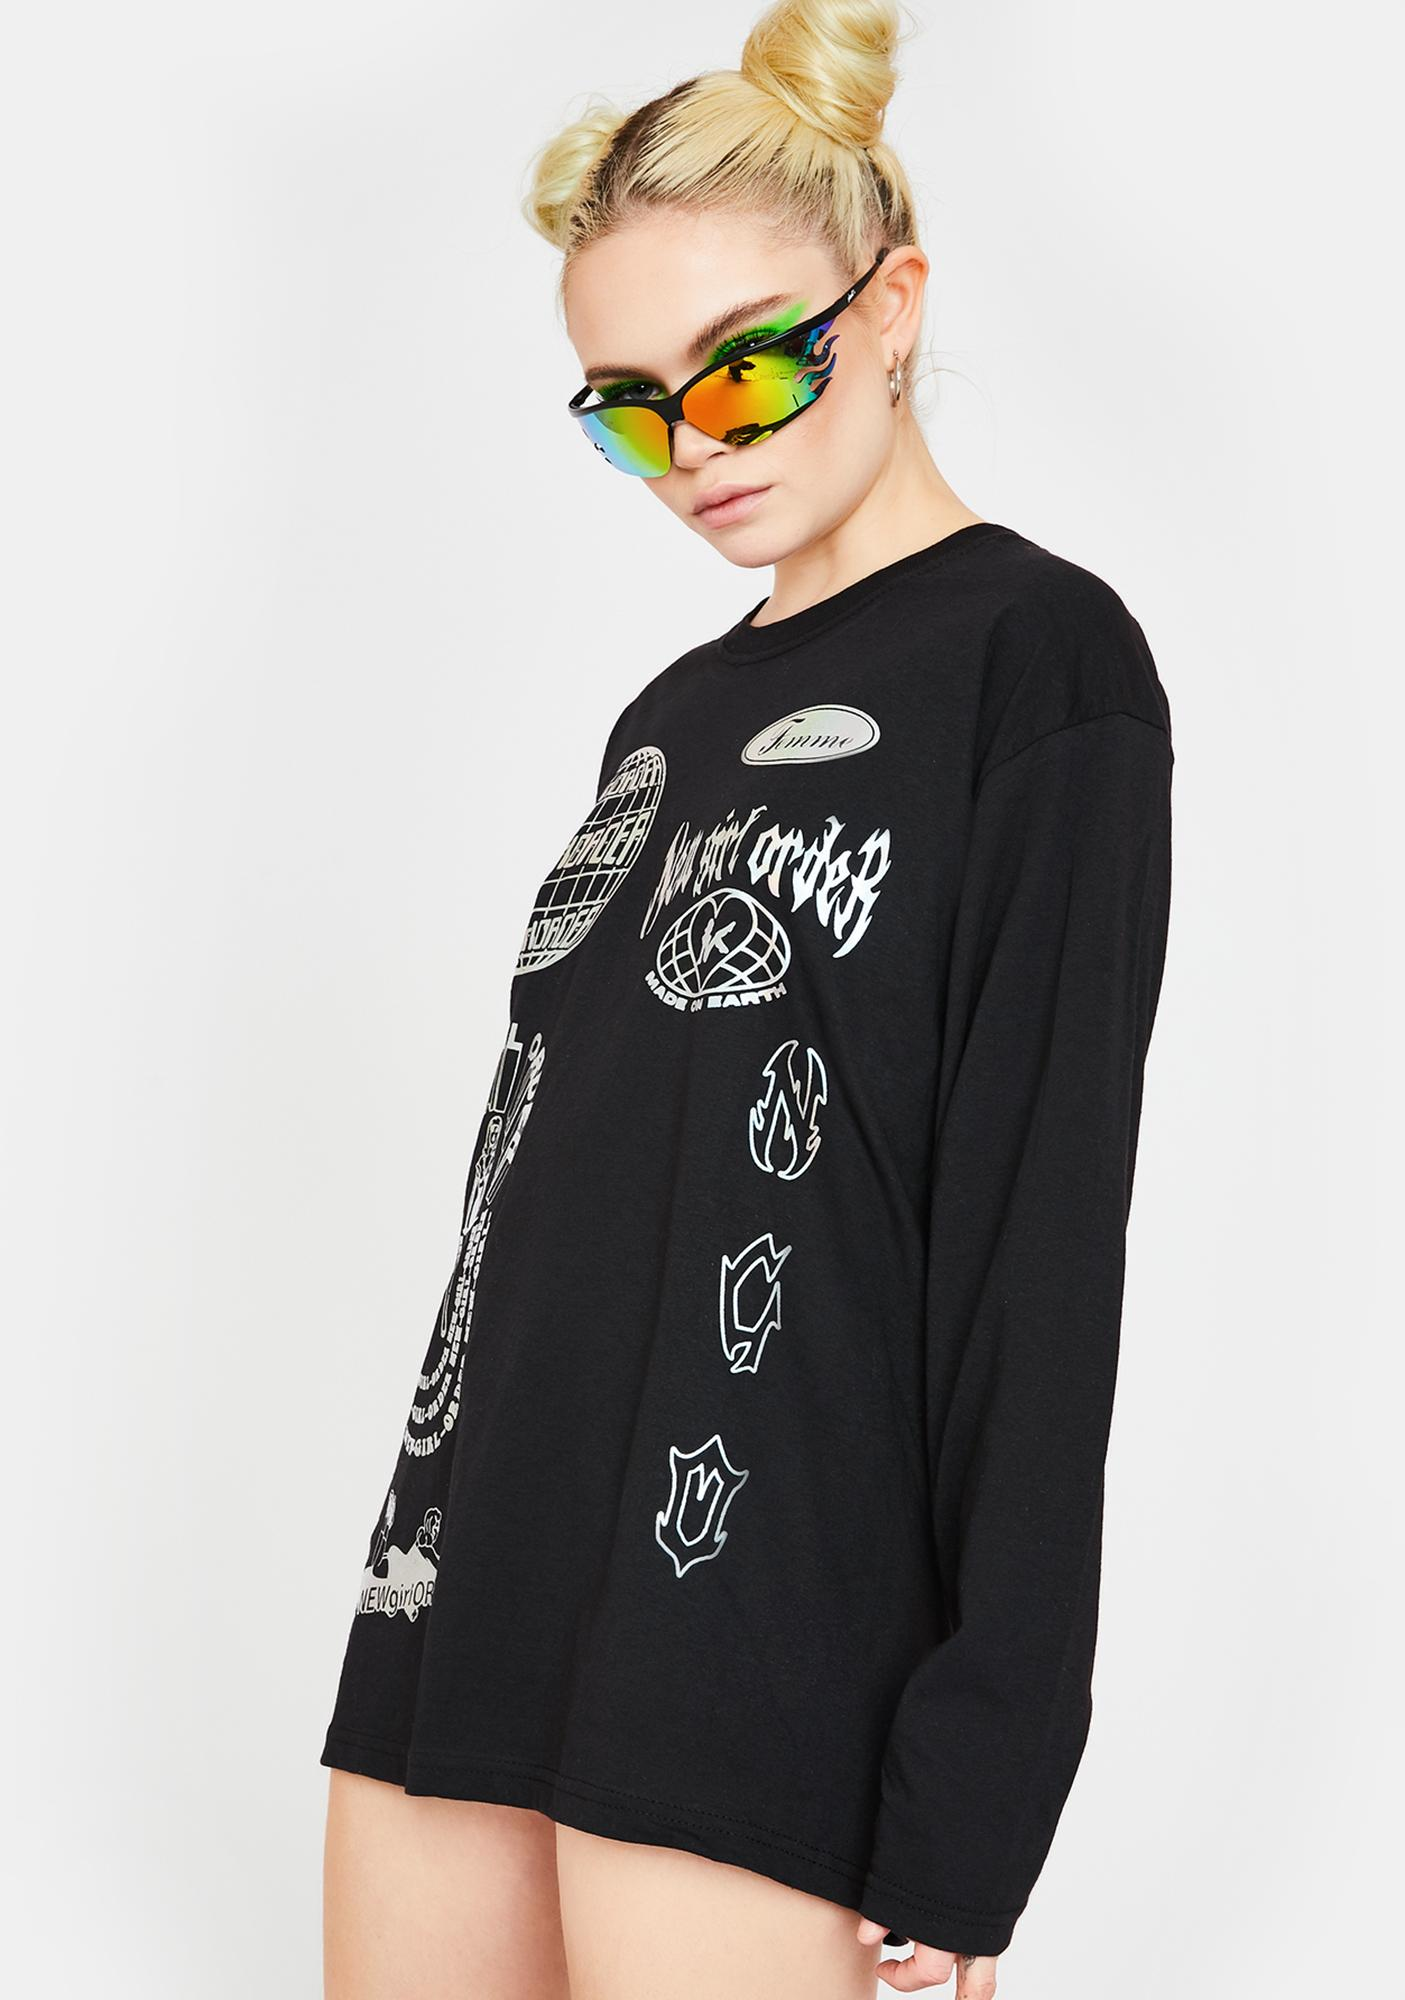 NEW GIRL ORDER Holographic Logo Long Sleeve Tee